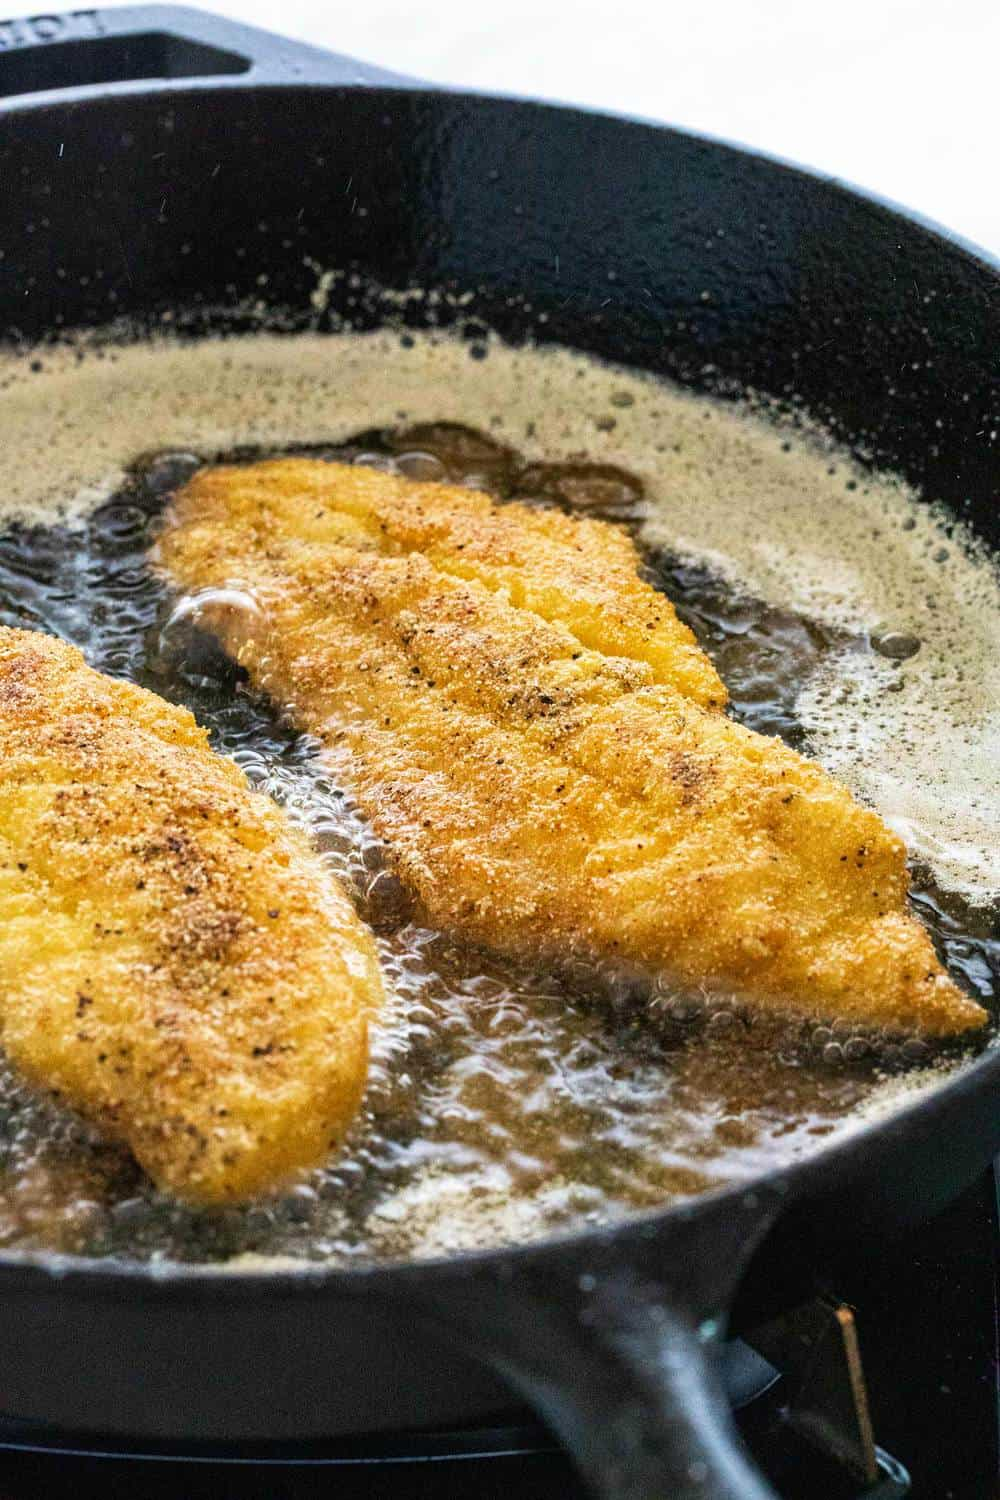 frying fish in a cast iron skillet